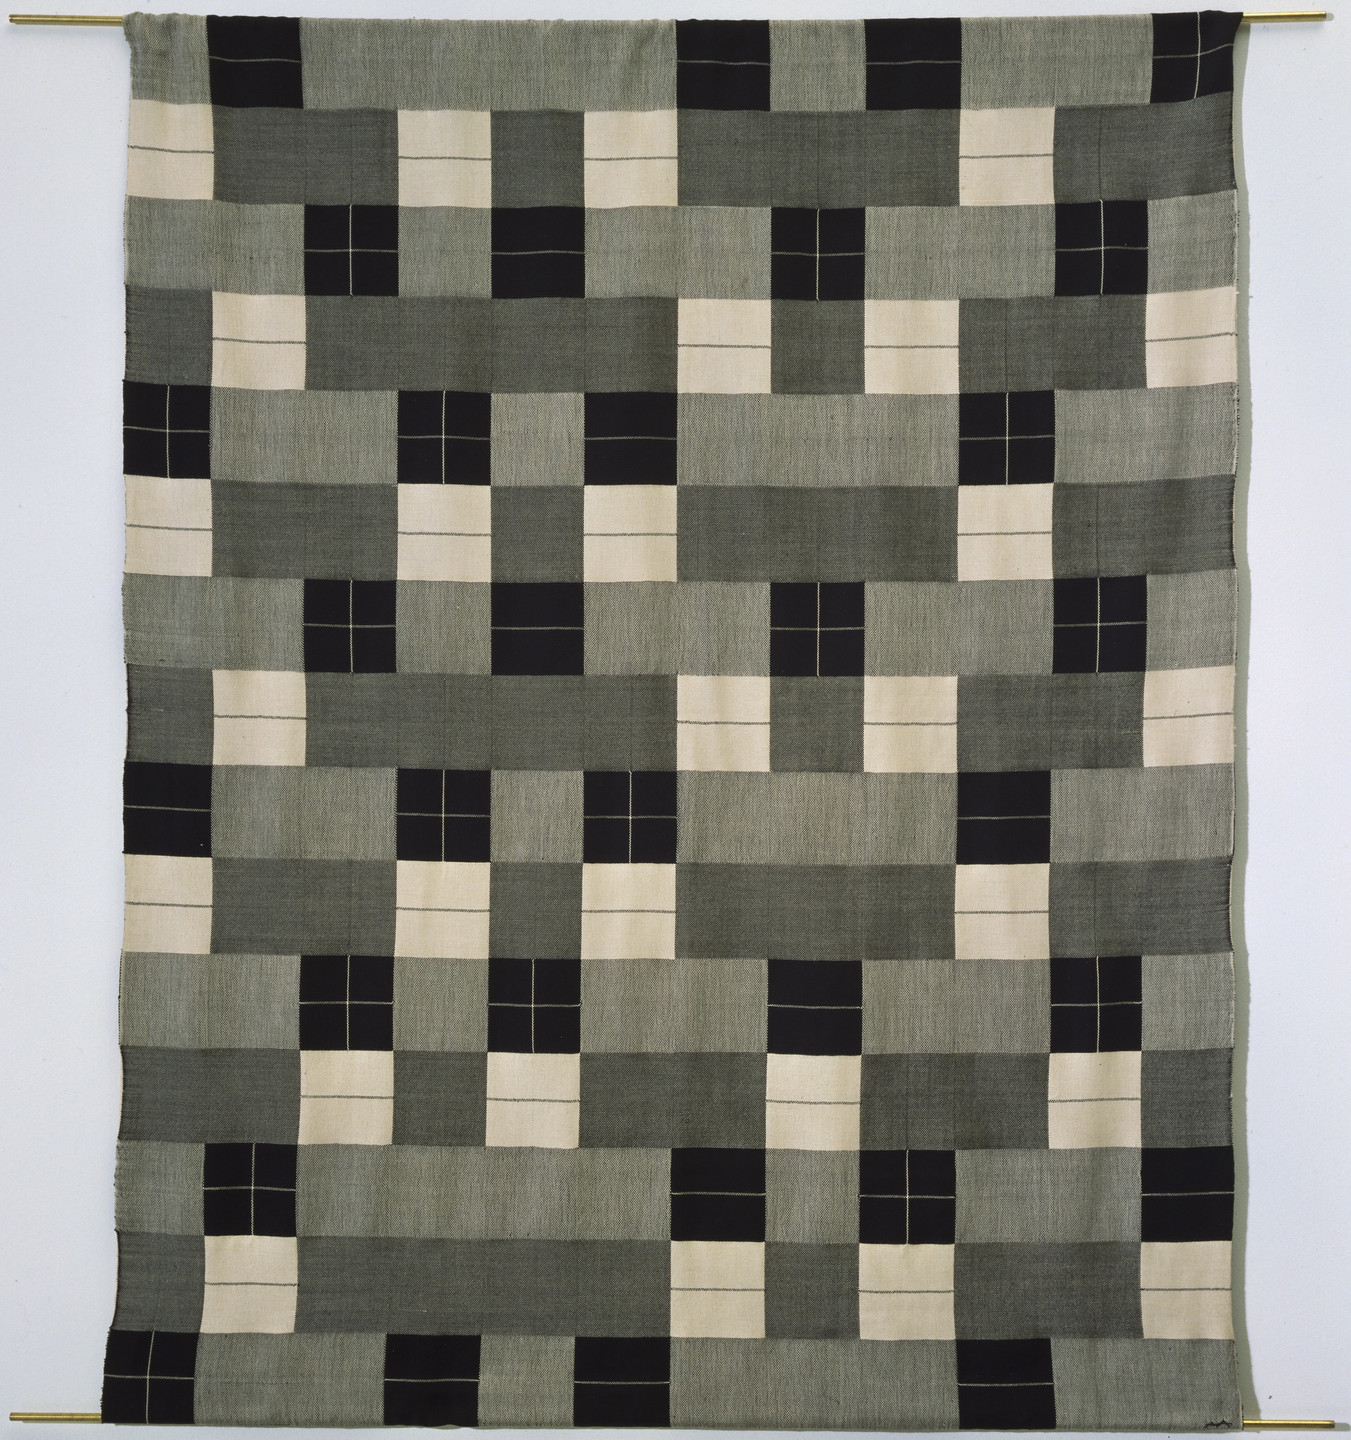 Anni Albers. Wall Hanging (Woven in 1964 under Albers' supervision from the original design). 1927